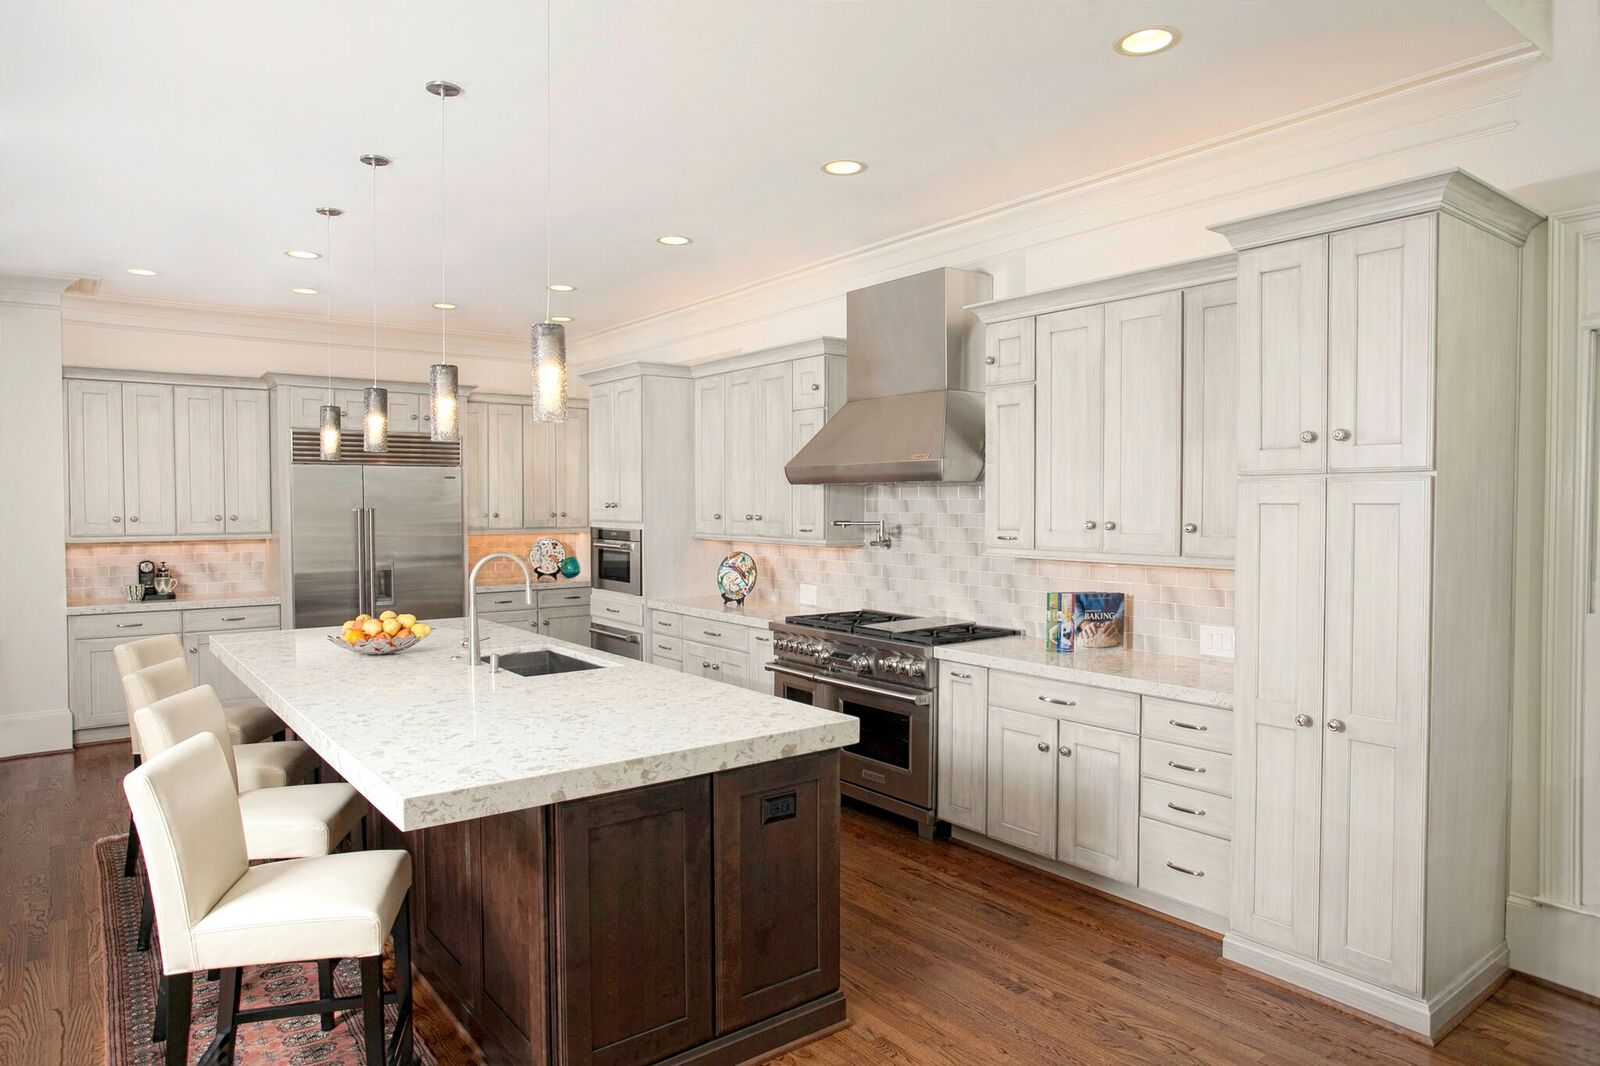 Kitchen Remodeling Design - Remodel Republic